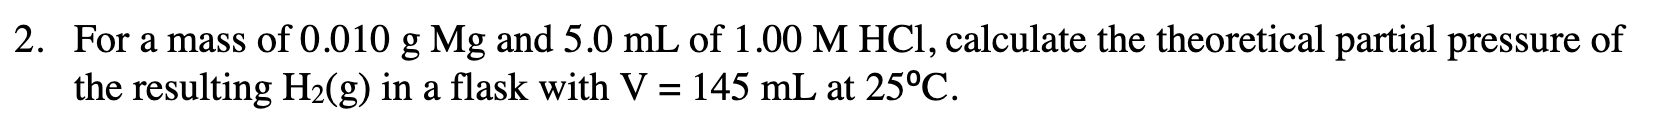 2. For a mass of 0.010 g Mg and 5.0 mL of 1.00 M HCl, calculate the theoretical partial pressure of the resulting H2(g) in a flask with V = 145 mL at 25°C